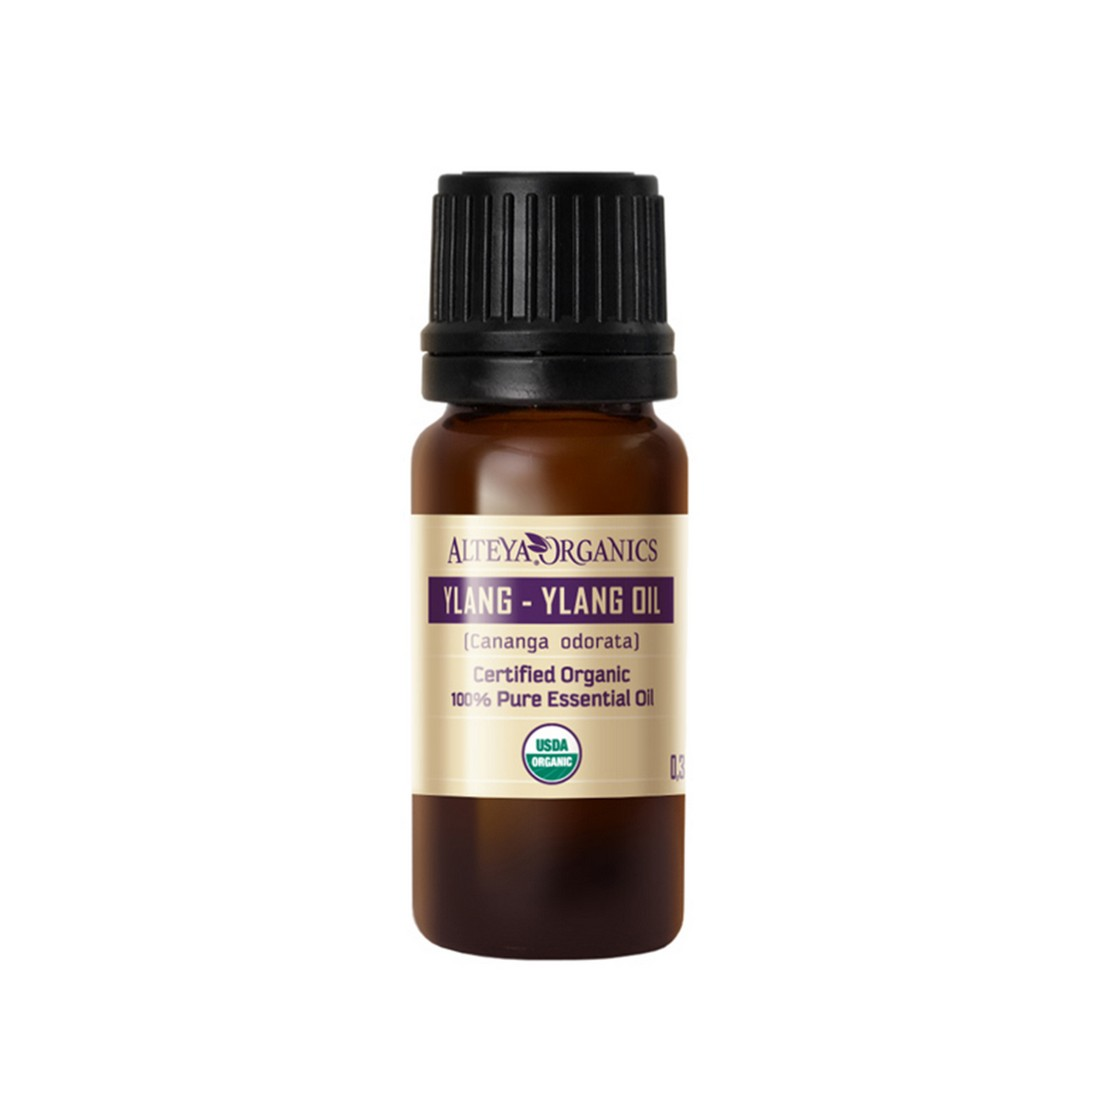 Bio organic essential ylang-ylang oil Alteya Organics 10 ml.